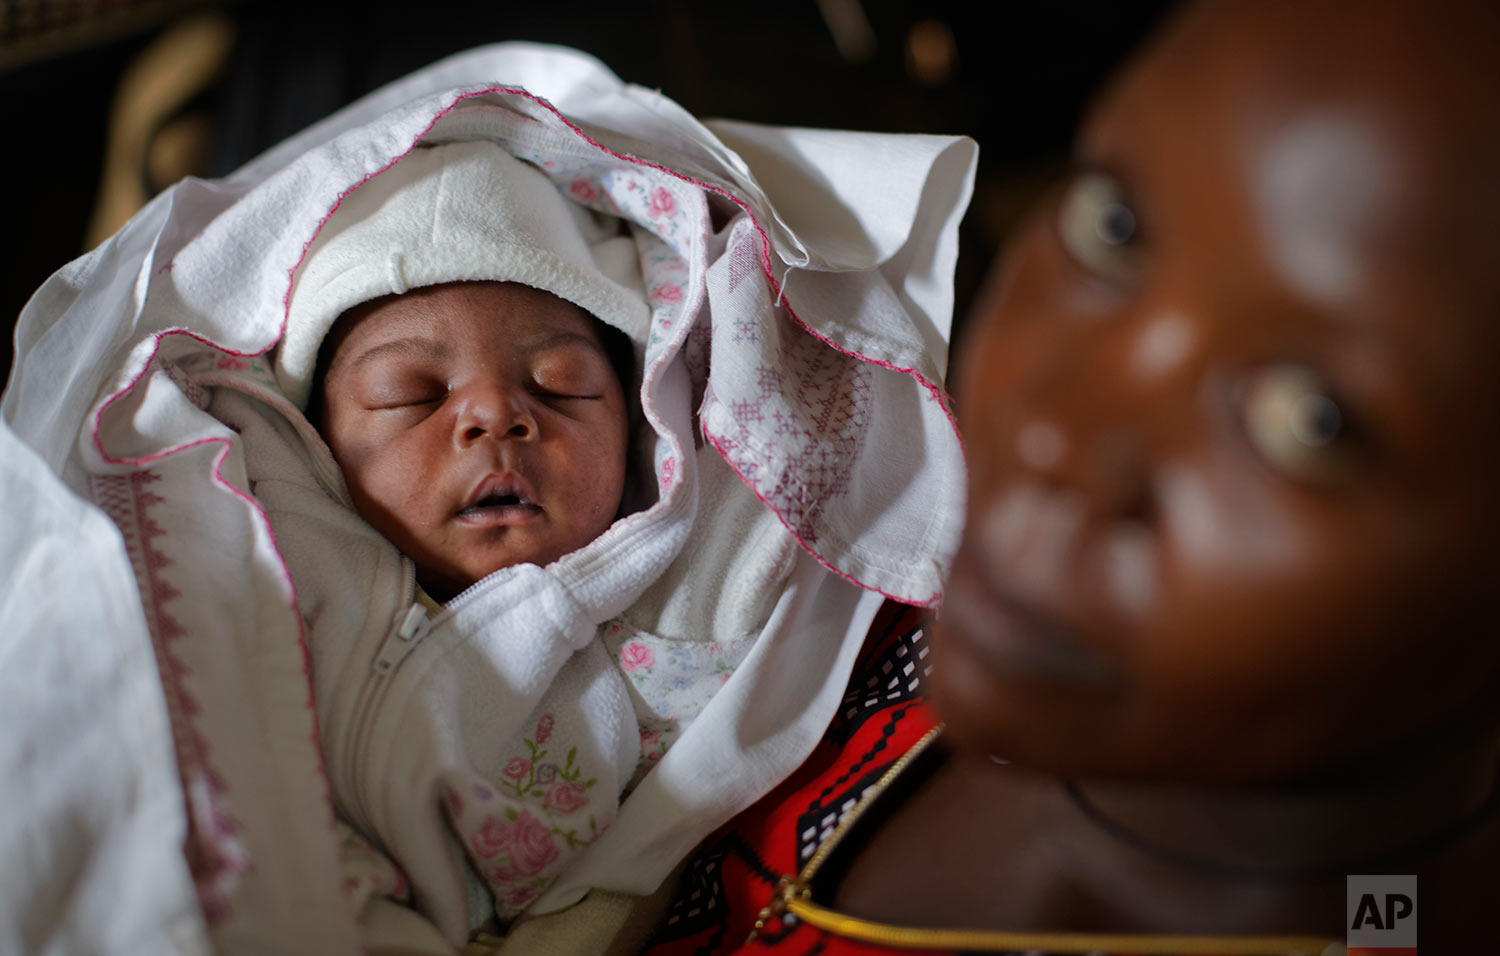 In this Tuesday, May 30, 2017 photo, Mary Nabiryo holds her 1-day-old son, Andrew, in the maternity ward of St. Joseph's Hospital in Kitovu, Uganda. The birth registration campaign in Uganda dates back only about five years and there's still uncertainty as to whether the government will invest sufficient funds to expand and sustain it. (AP Photo/Ben Curtis)